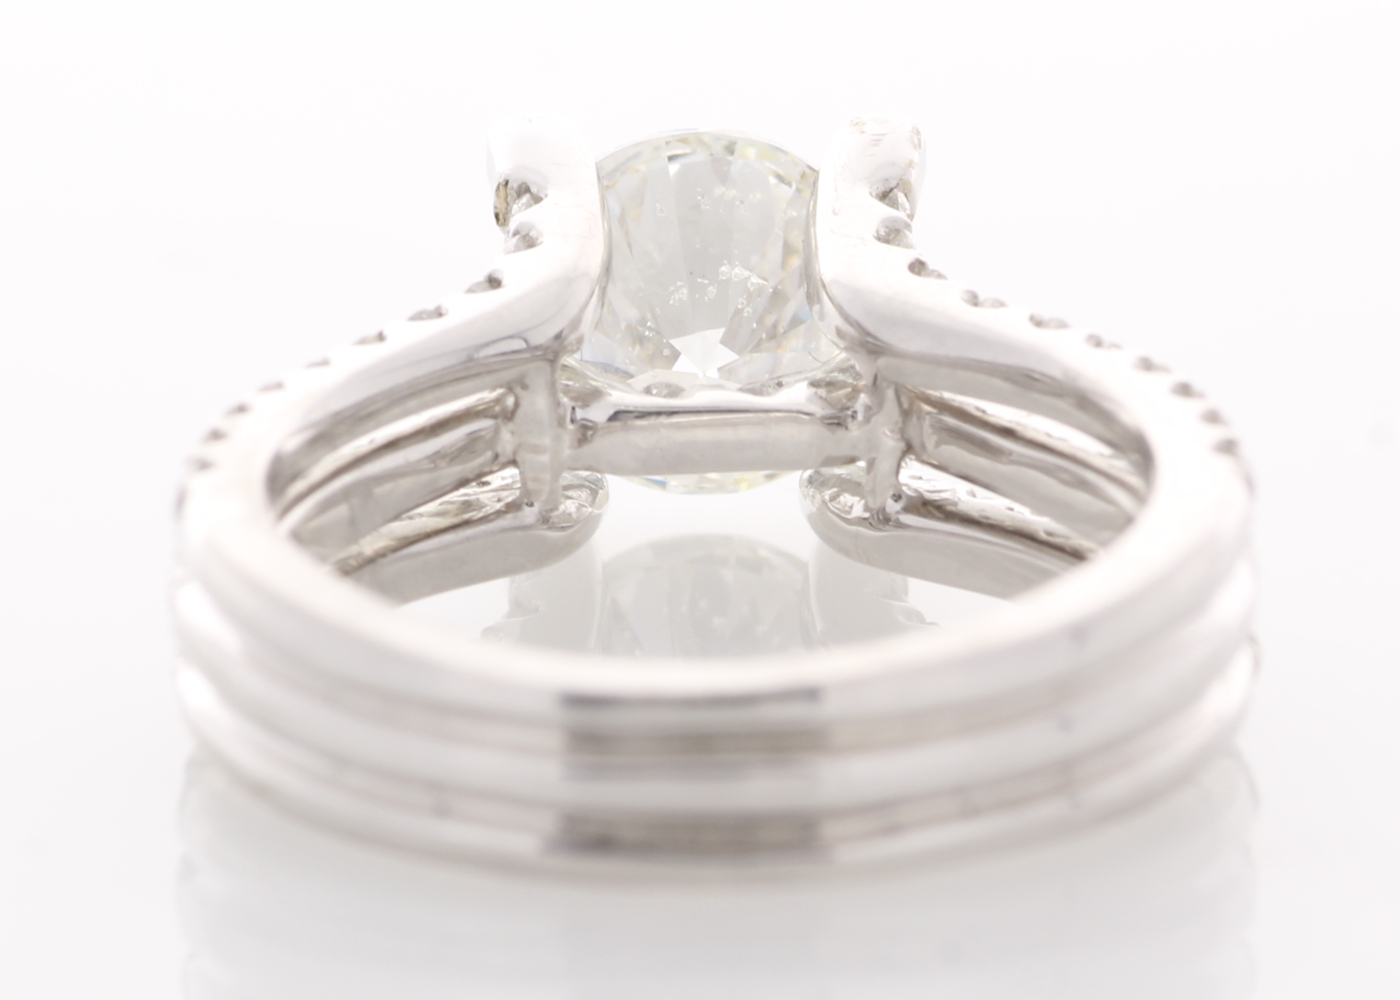 Lot 18 - 18ct White Gold Single Stone Prong Set With Stone Set Shoulders Diamond Ring 3.10